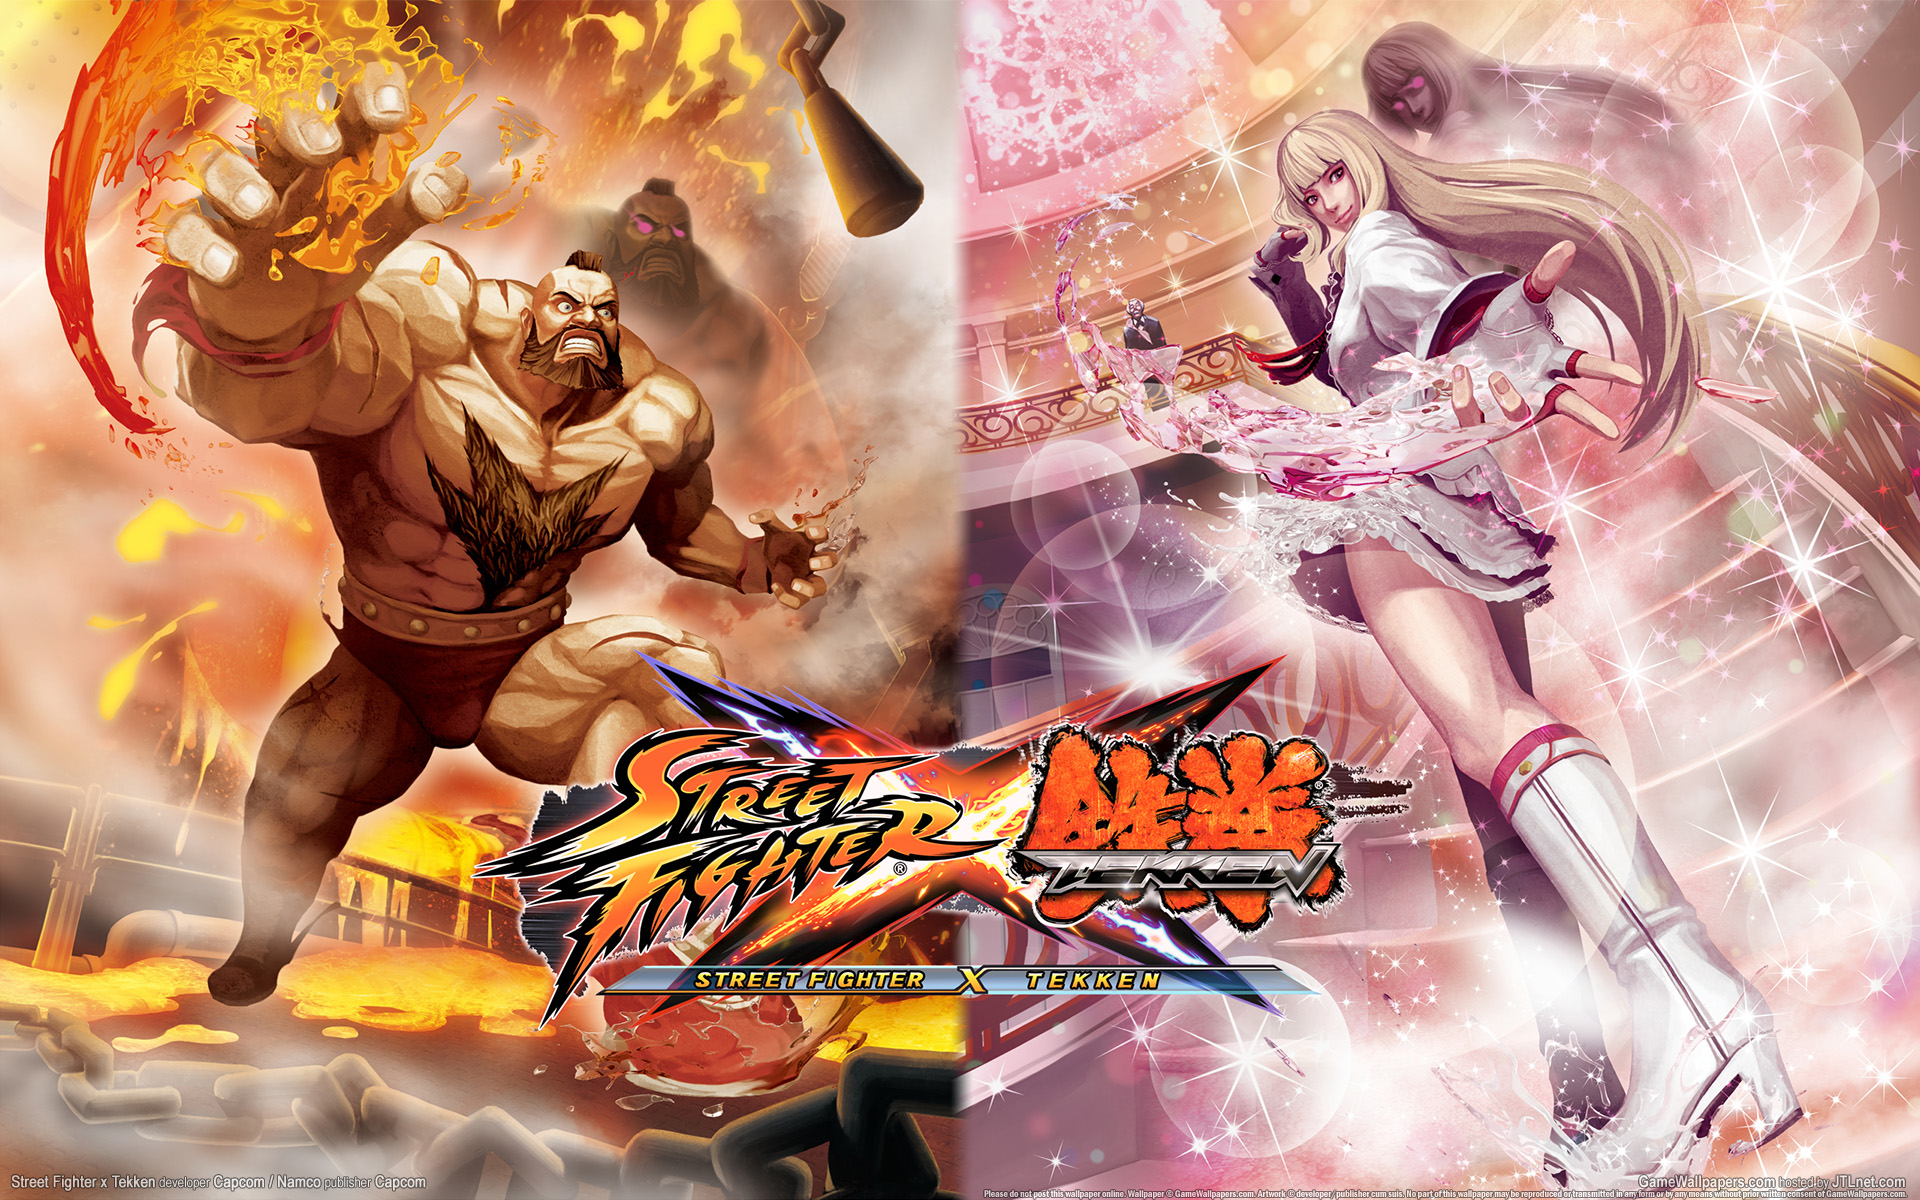 Street Fighter X Tekken Hd Wallpaper Background Image 1920x1200 Id 200011 Wallpaper Abyss